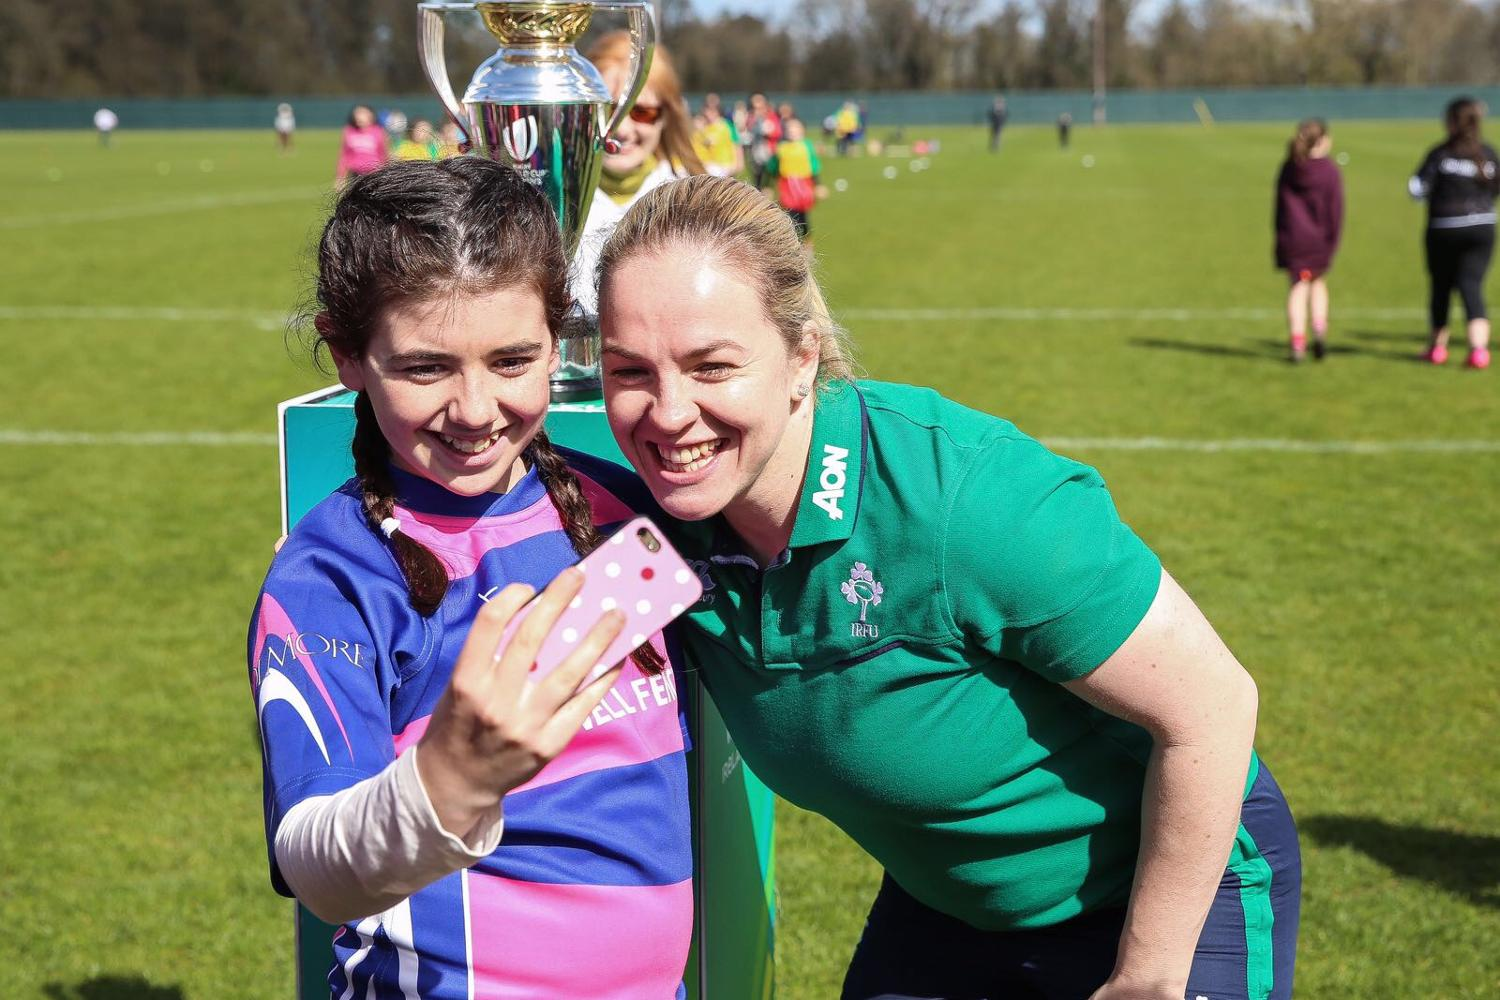 Women's Rugby World Cup 2017 Trophy Tour